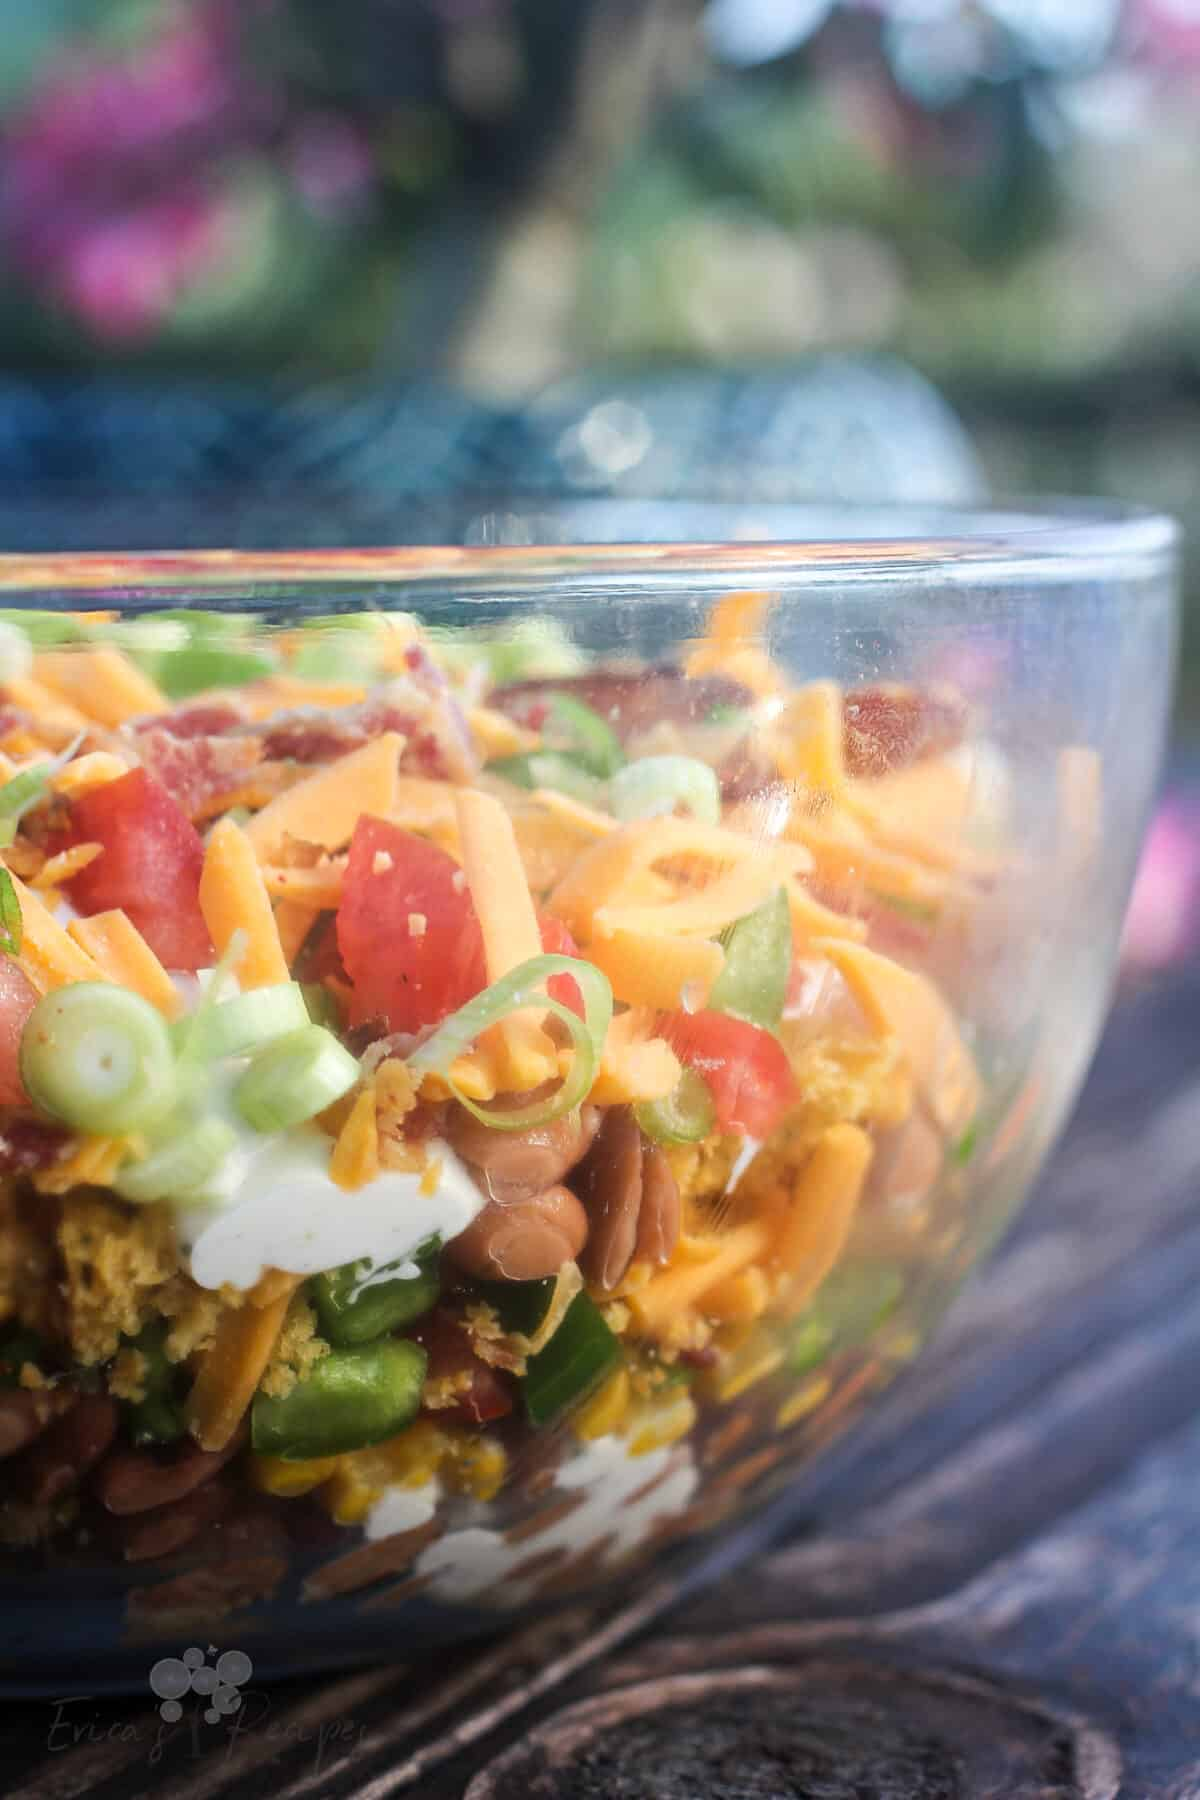 side view into glass bowl showing layers of cornbread salad